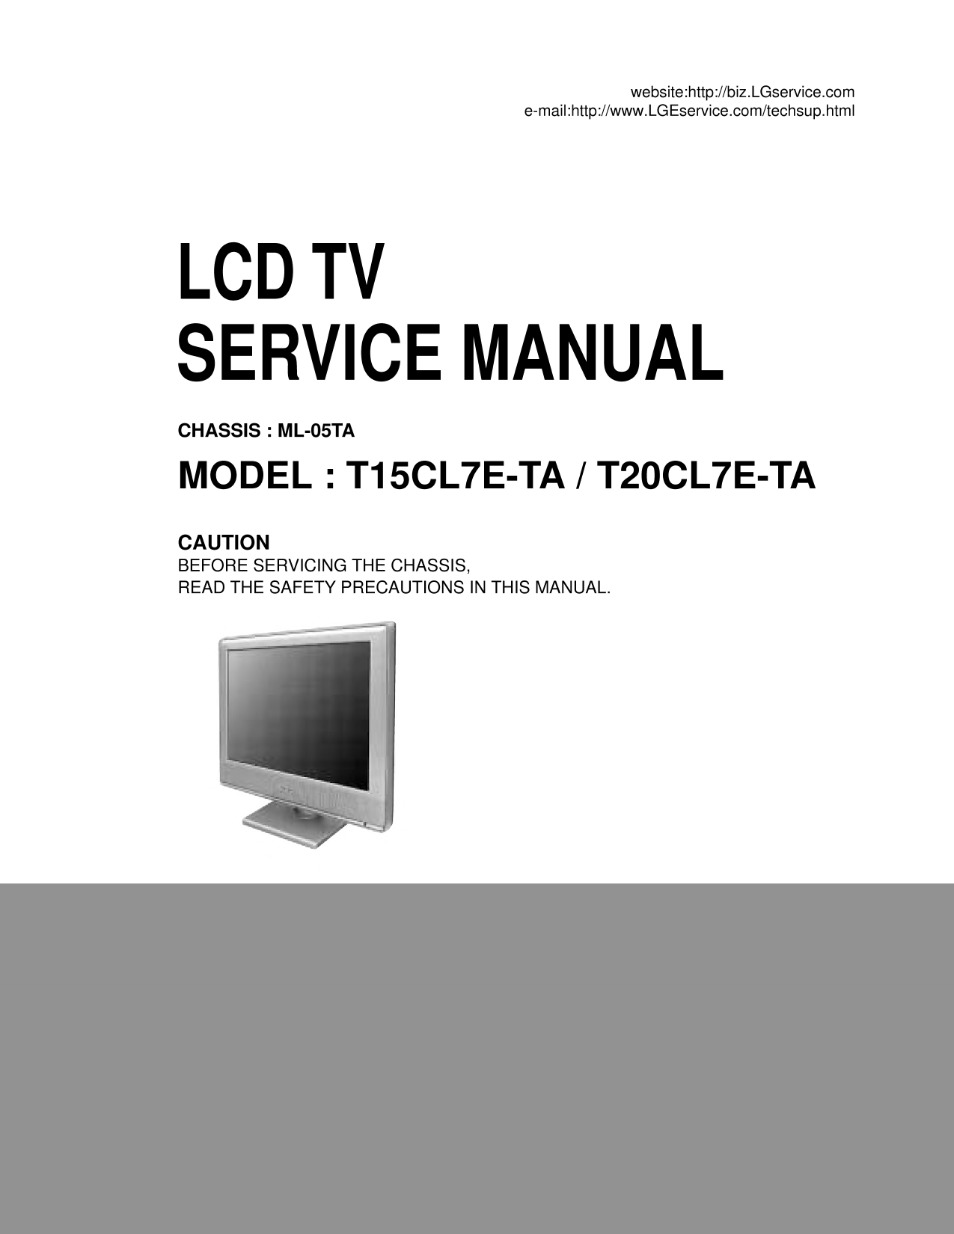 Lg Tv Schematics Trusted Wiring Diagram Power Supply Ac Matic Using Pc8178 2sd2498 Service Manuals And Repair Information For Rca Source